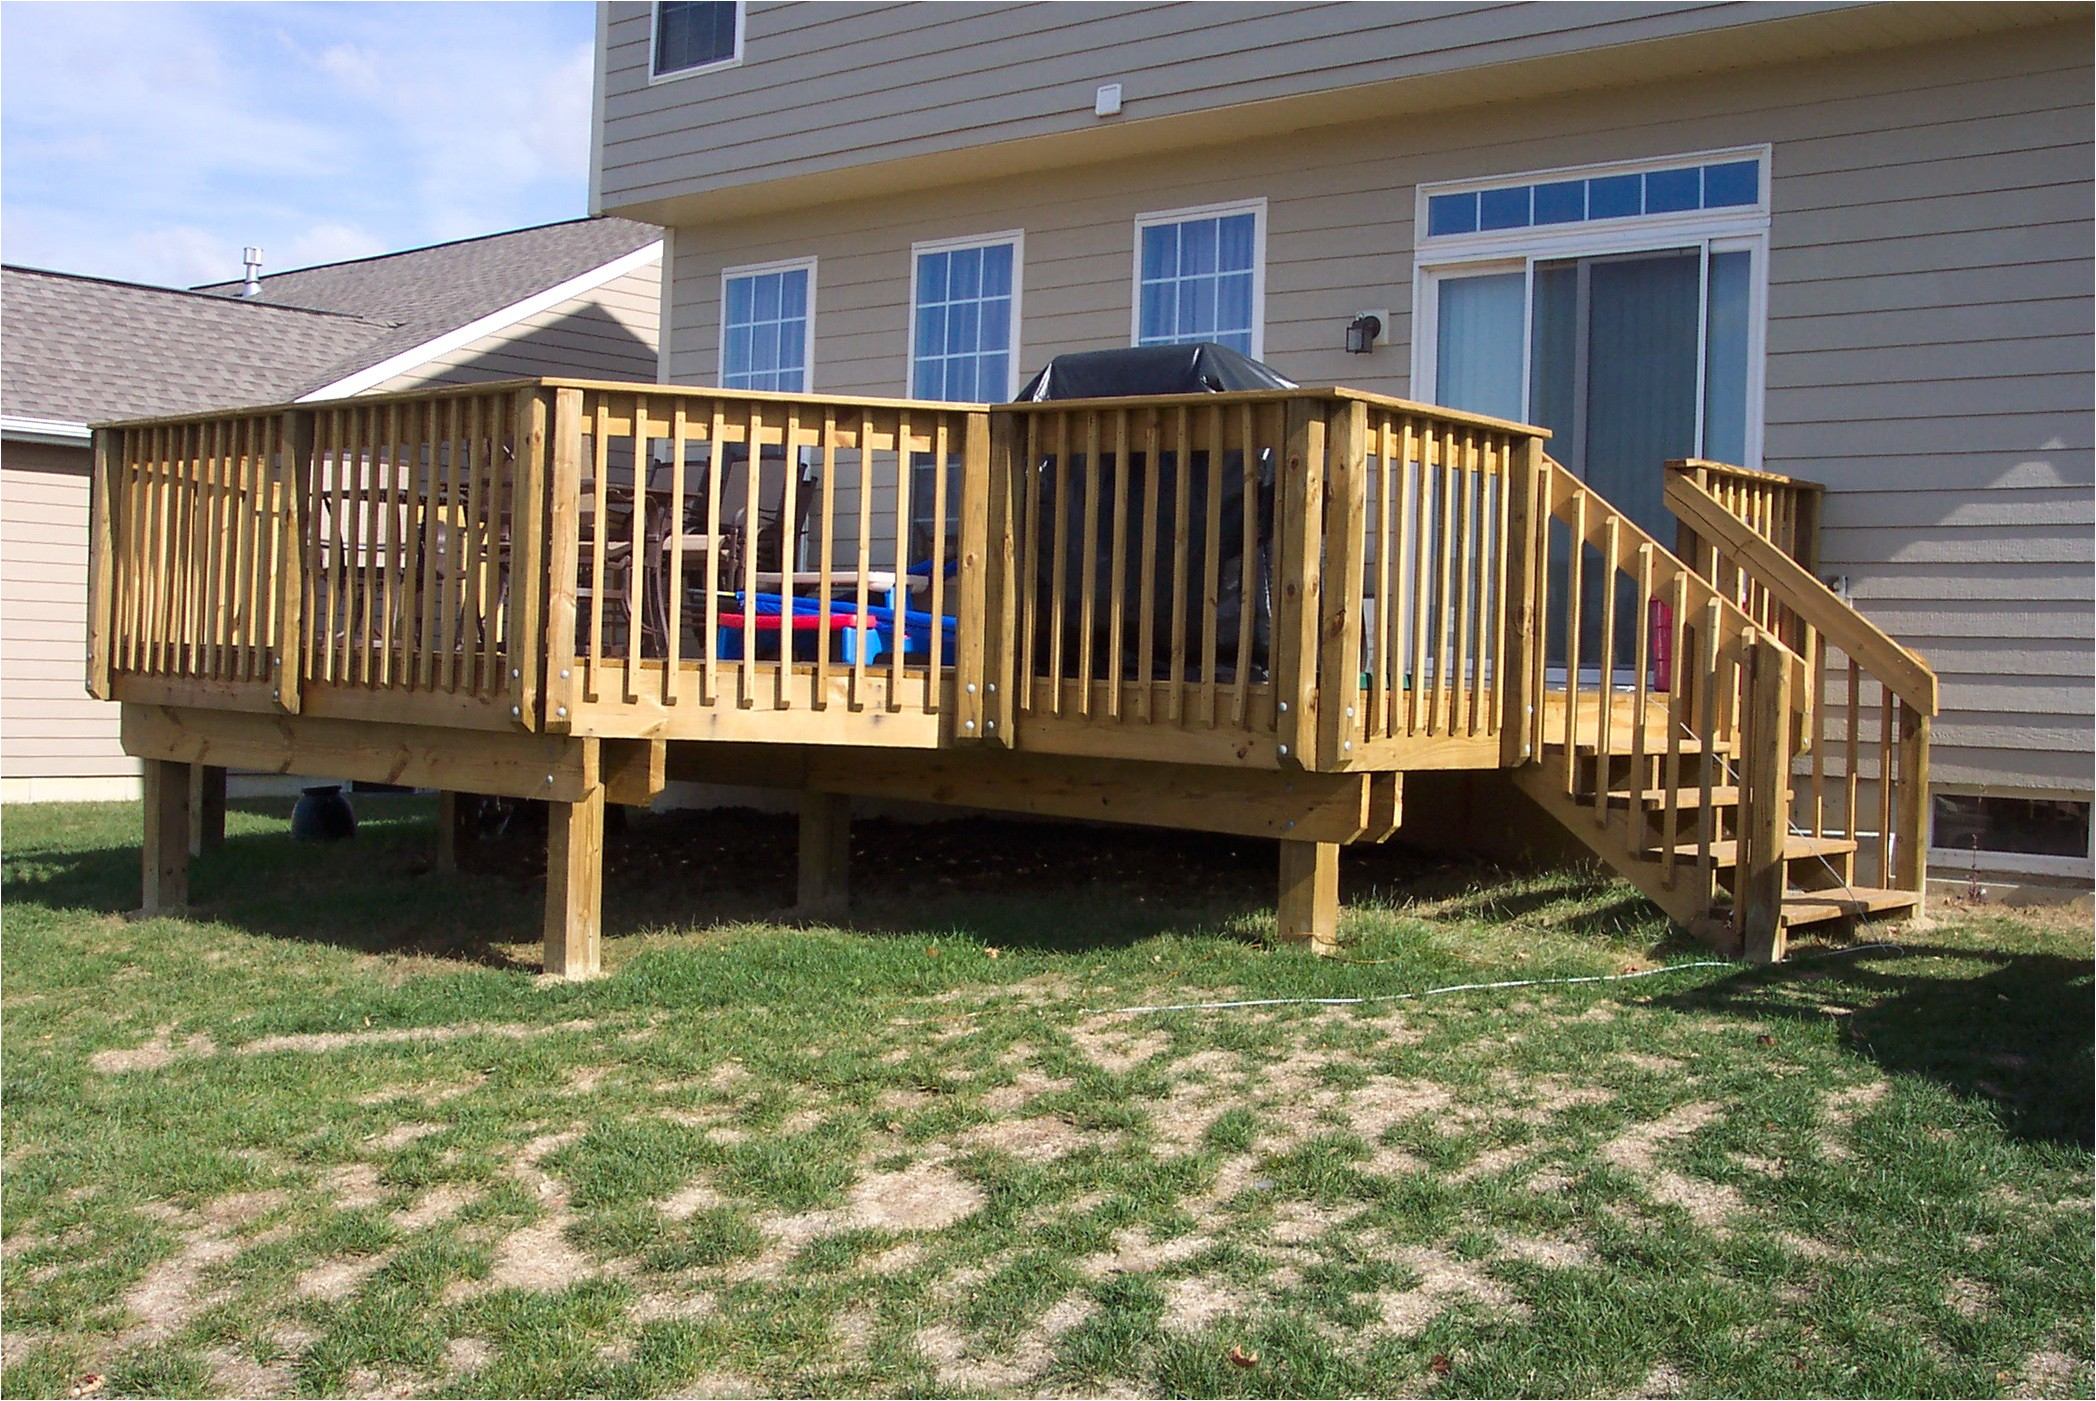 Home depot deck plans home depot decks design home design ideas